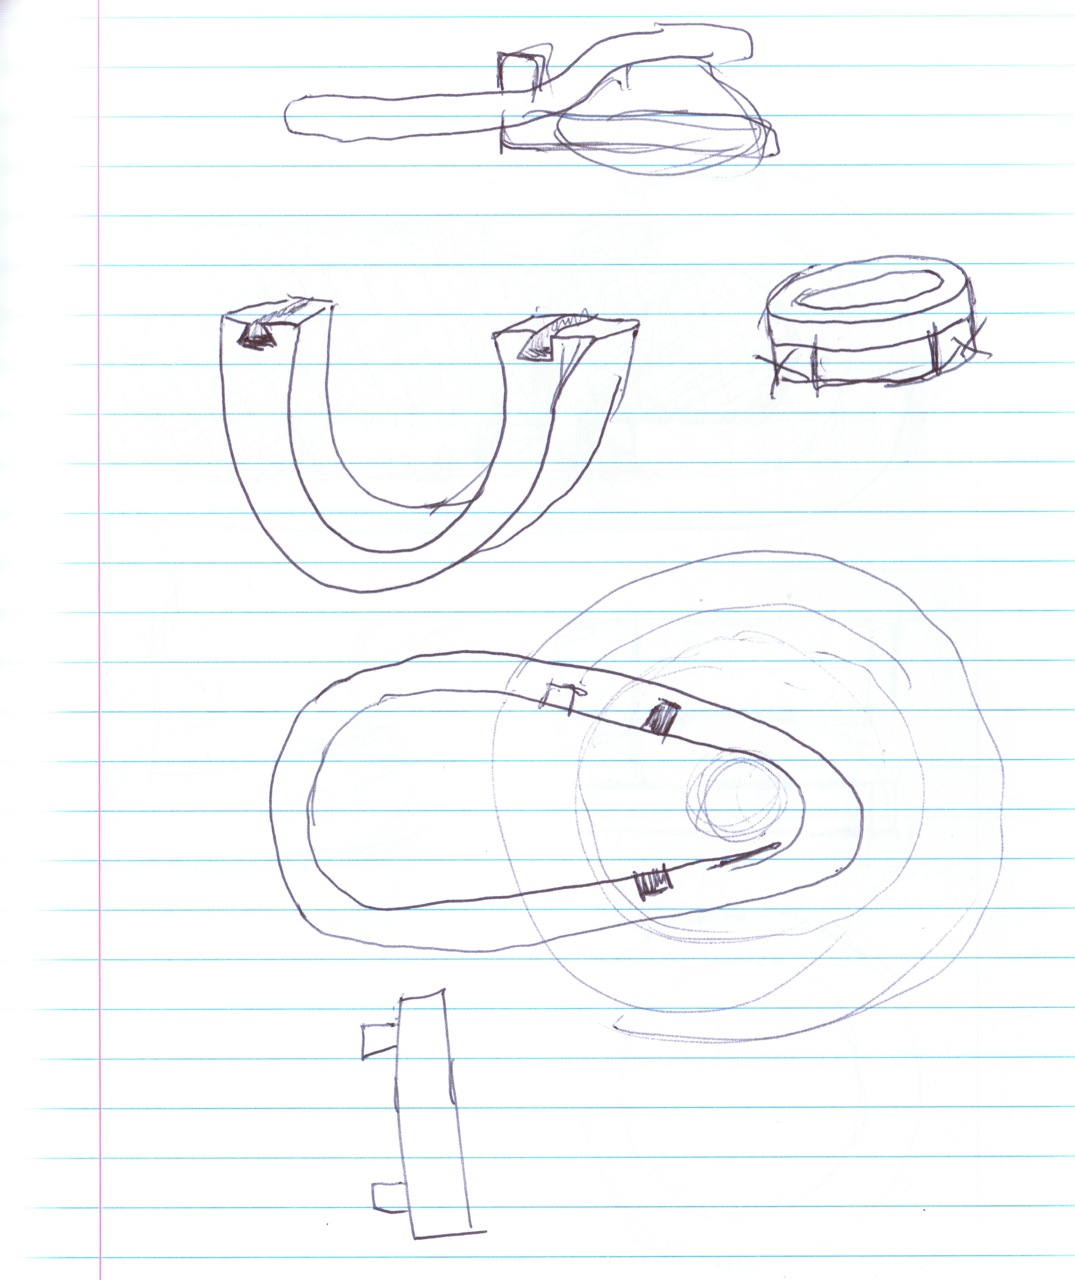 various sketches of interlocking forms